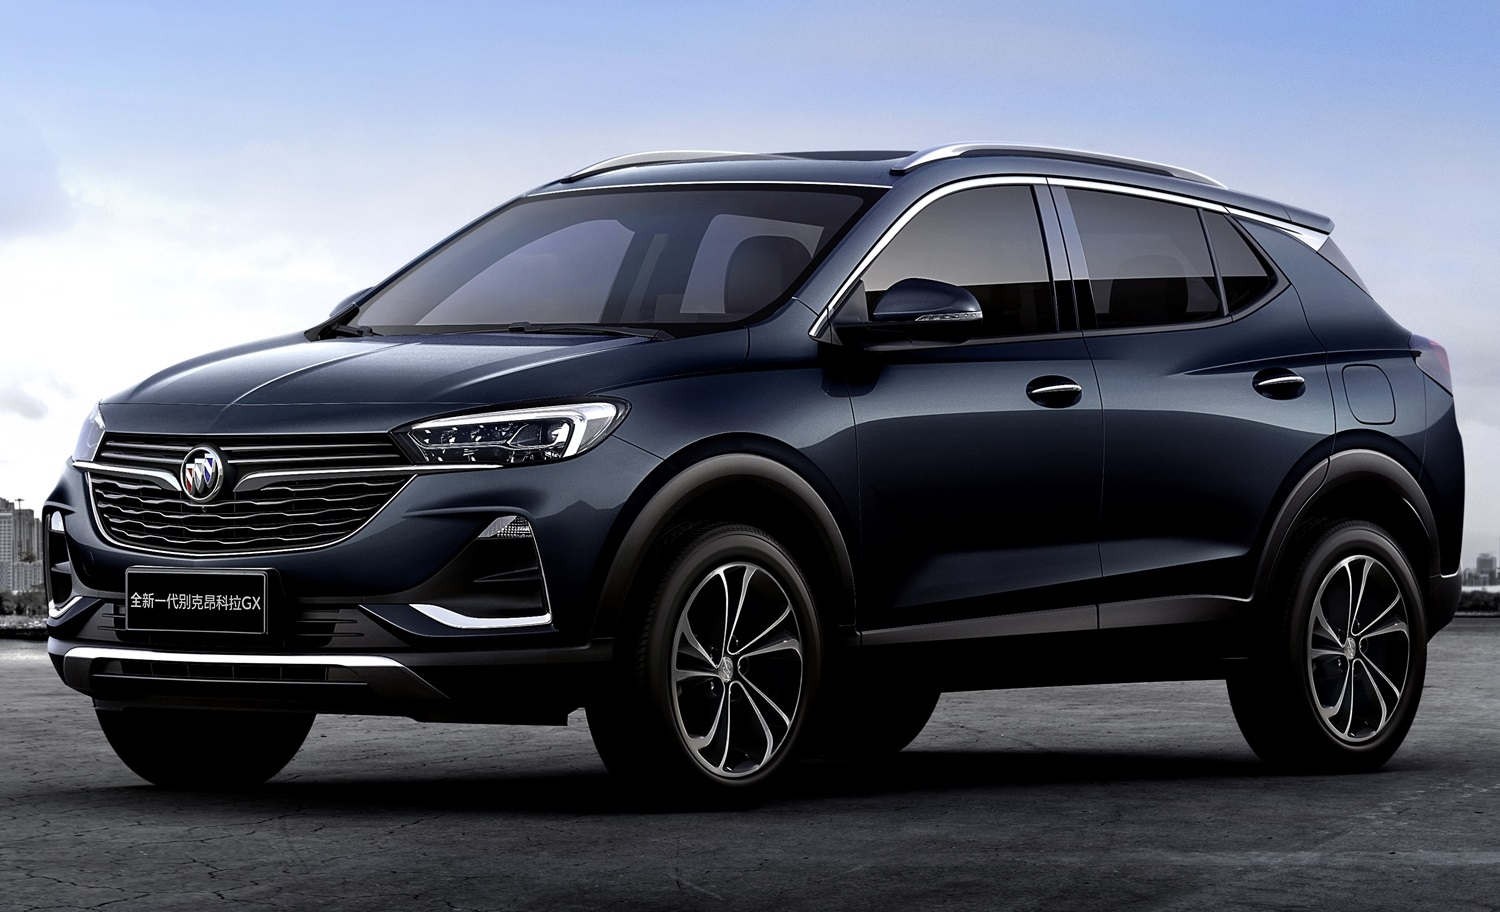 New Buick Encore Gx Images Released: Photo Gallery   Gm When Will The New 2022 Buick Encore Gx Be Available